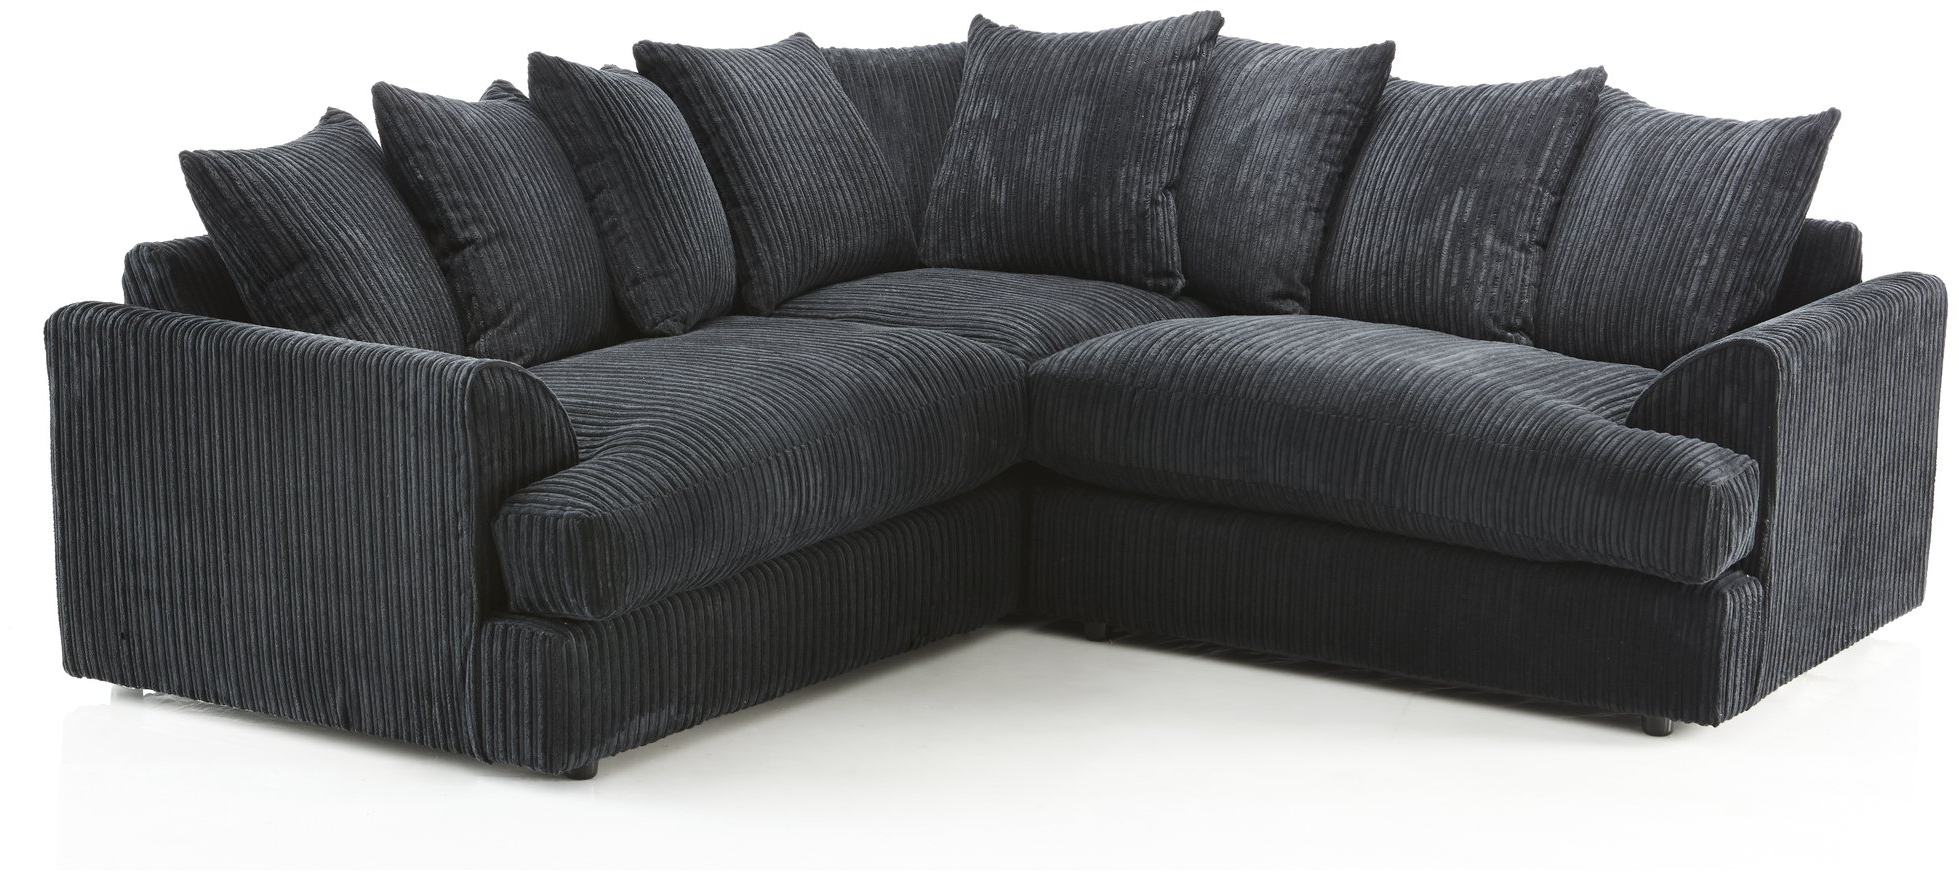 really small corner sofas coaster occasional sofa table fabric couch back cushions colour option living features